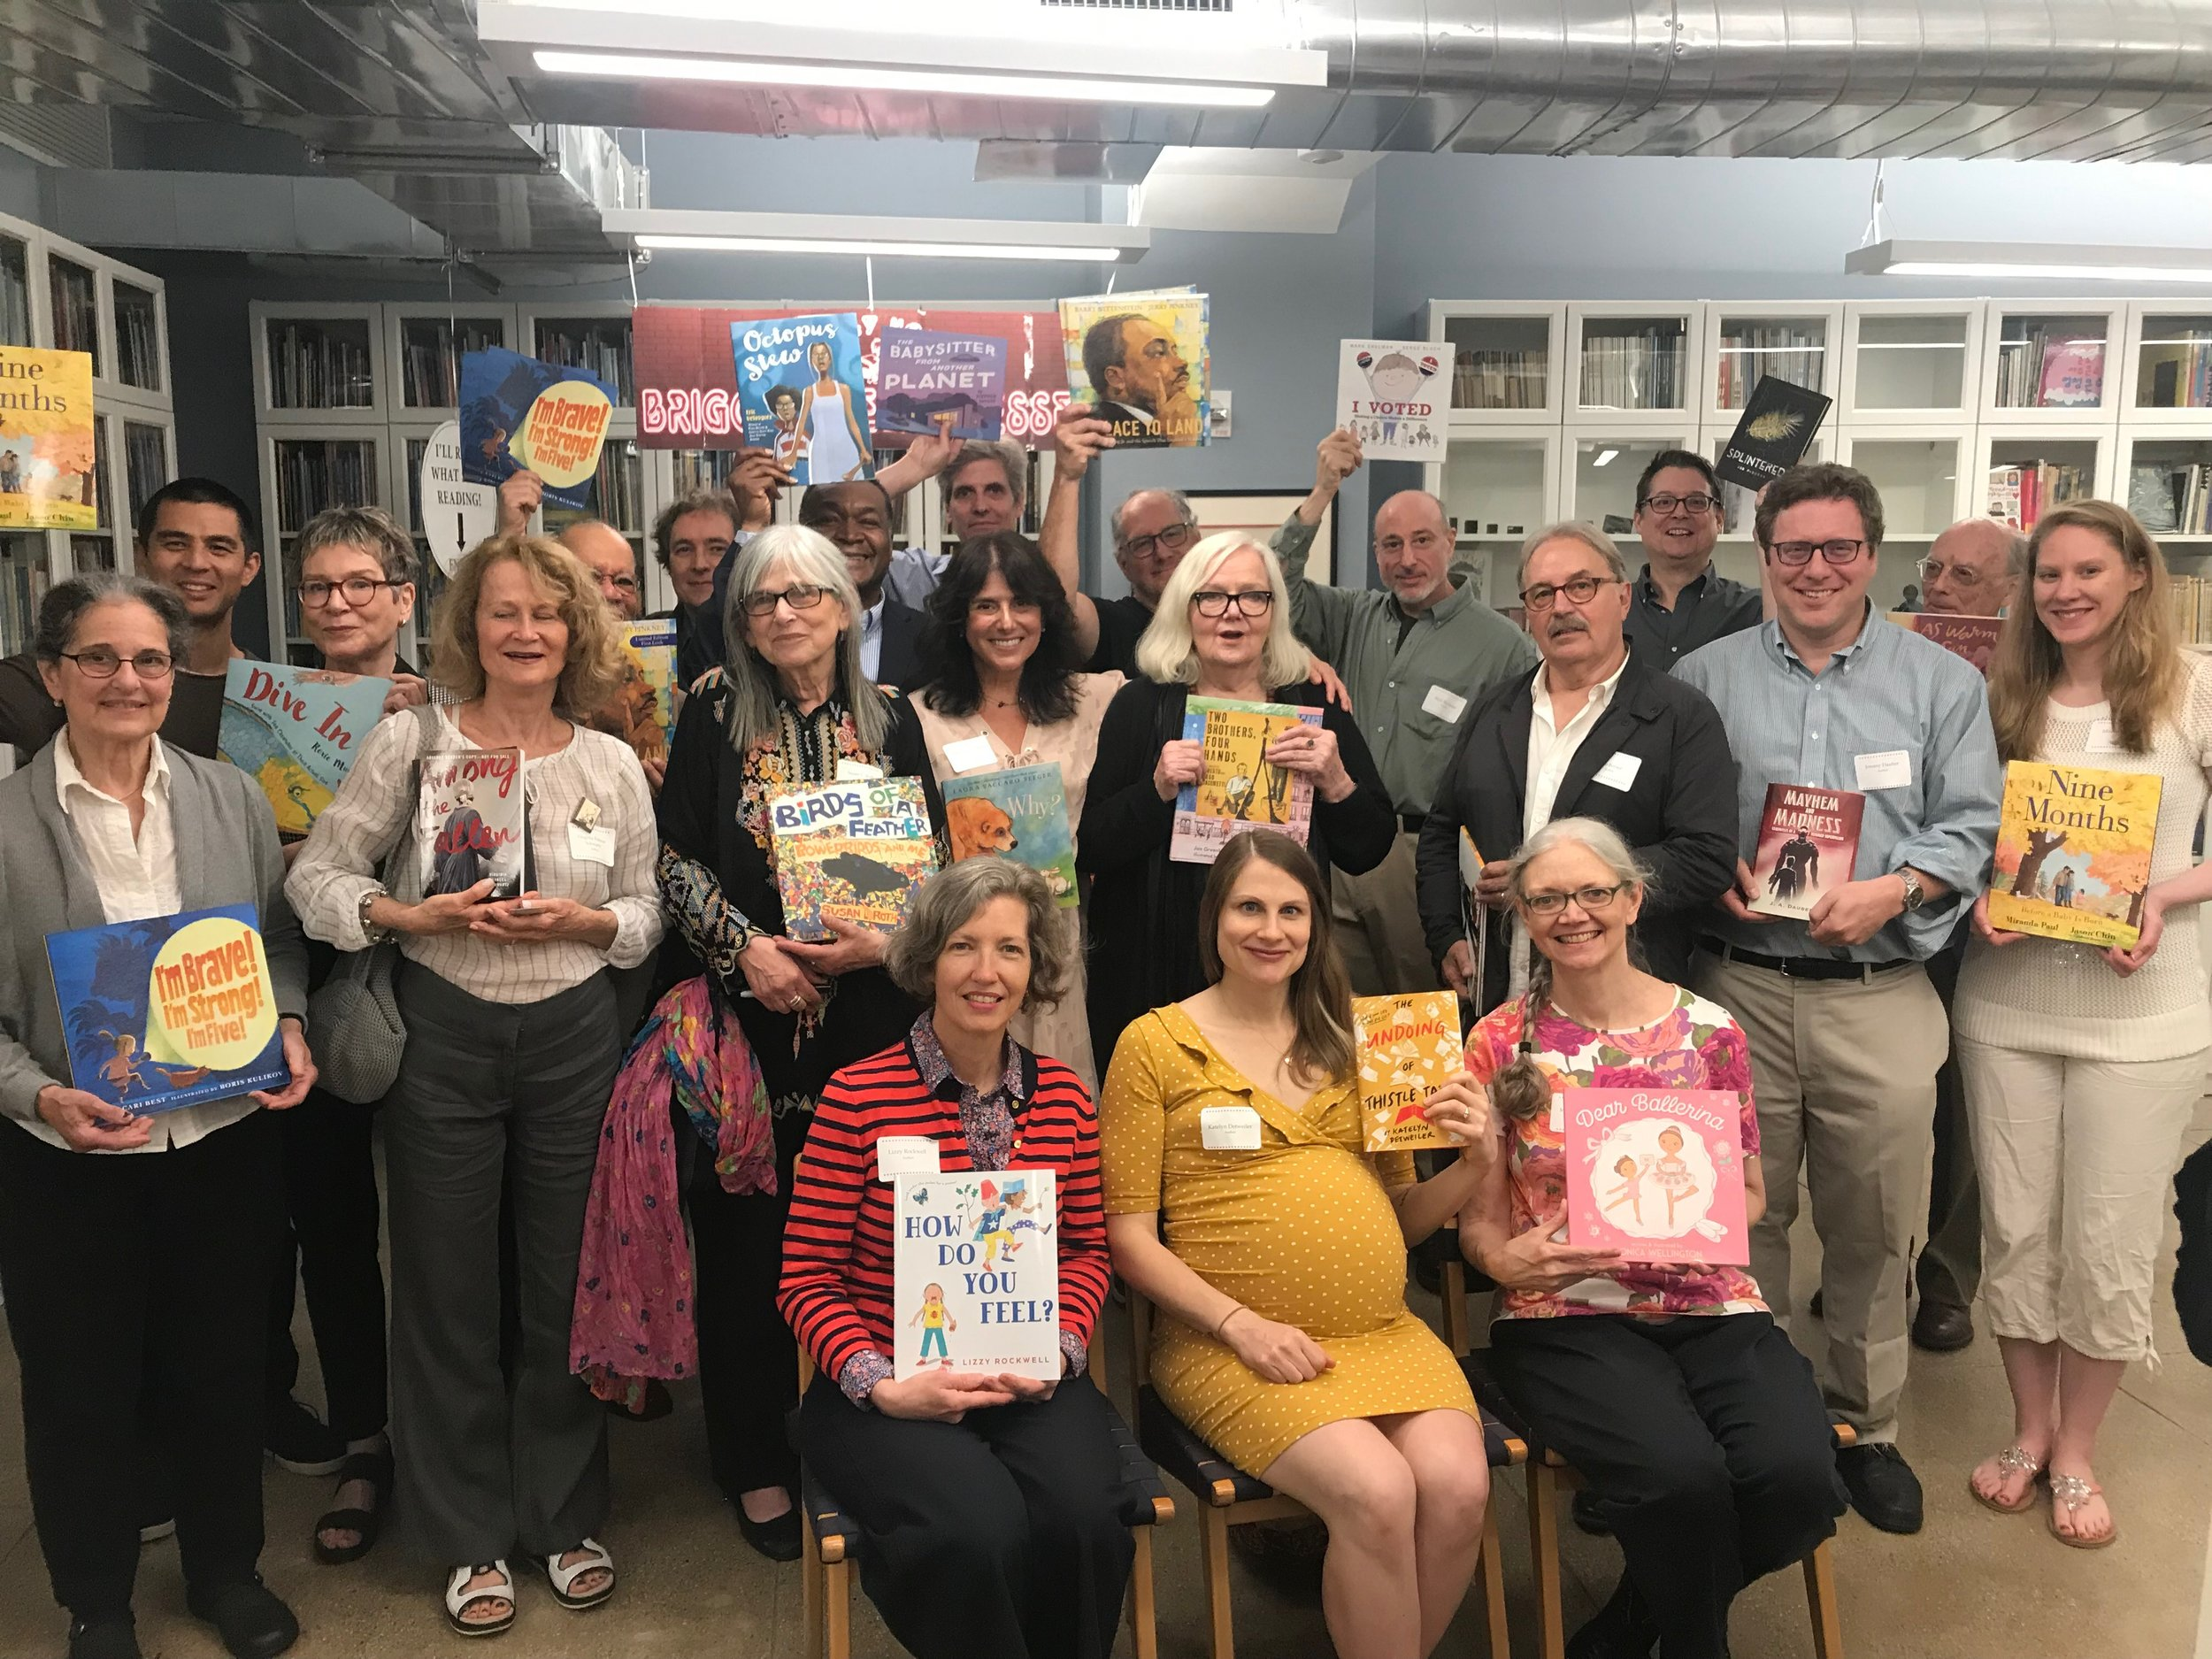 A whole bunch of us authors in the amazing Holiday House library